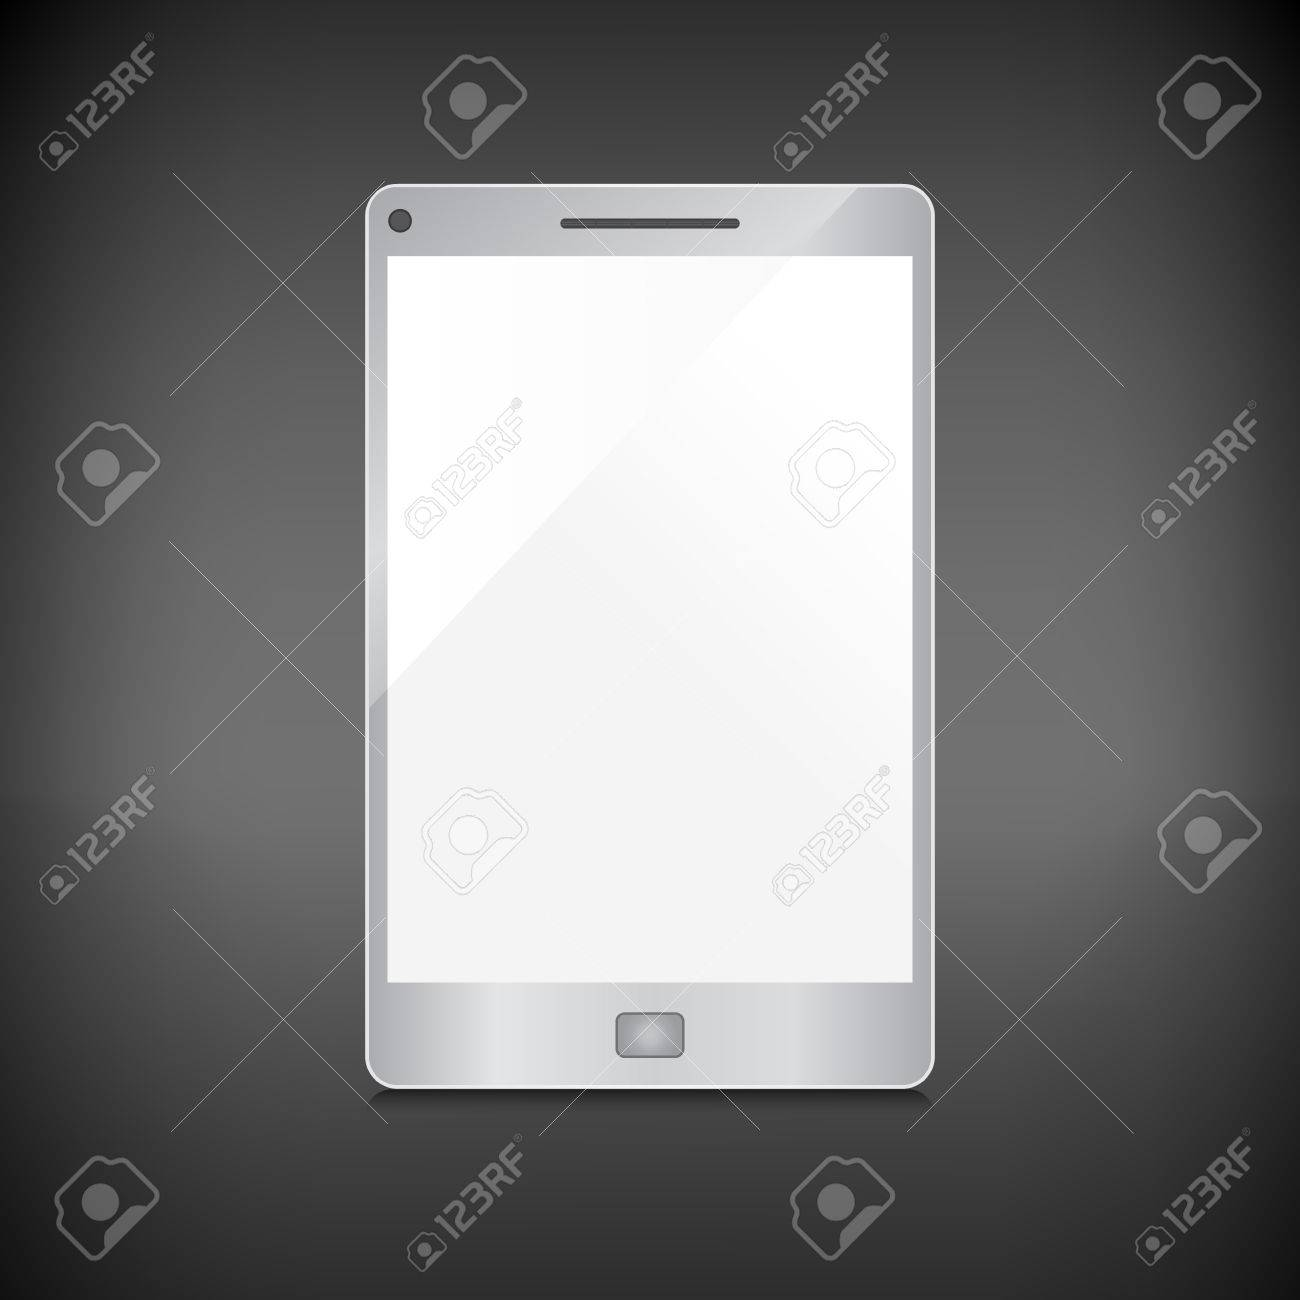 Realistic smartphone with blank screen isolated on dark background Stock Vector - 25129937